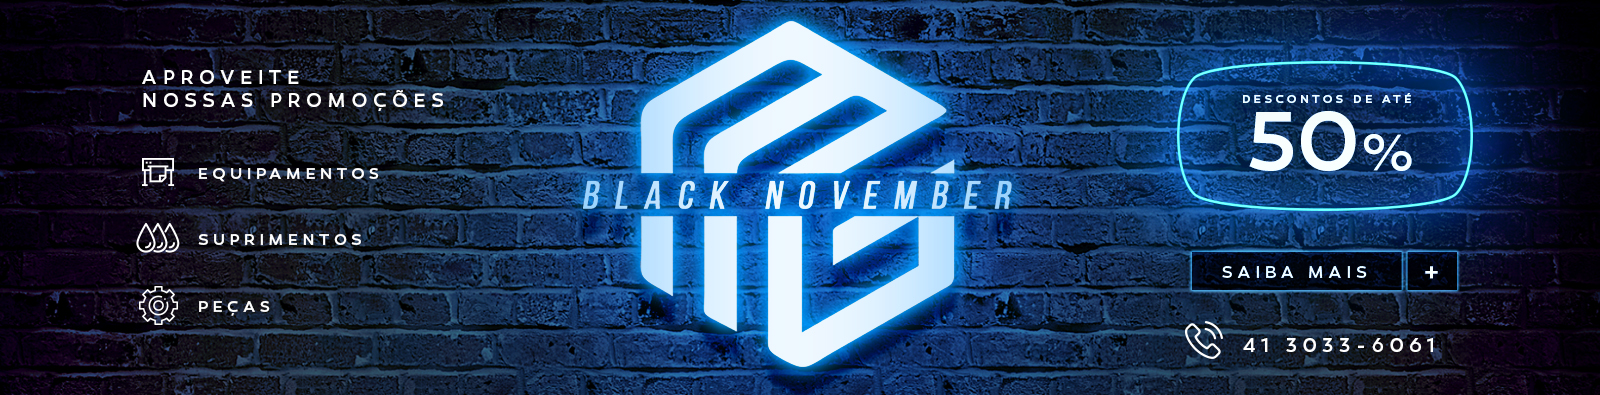 Black November Megagraphic